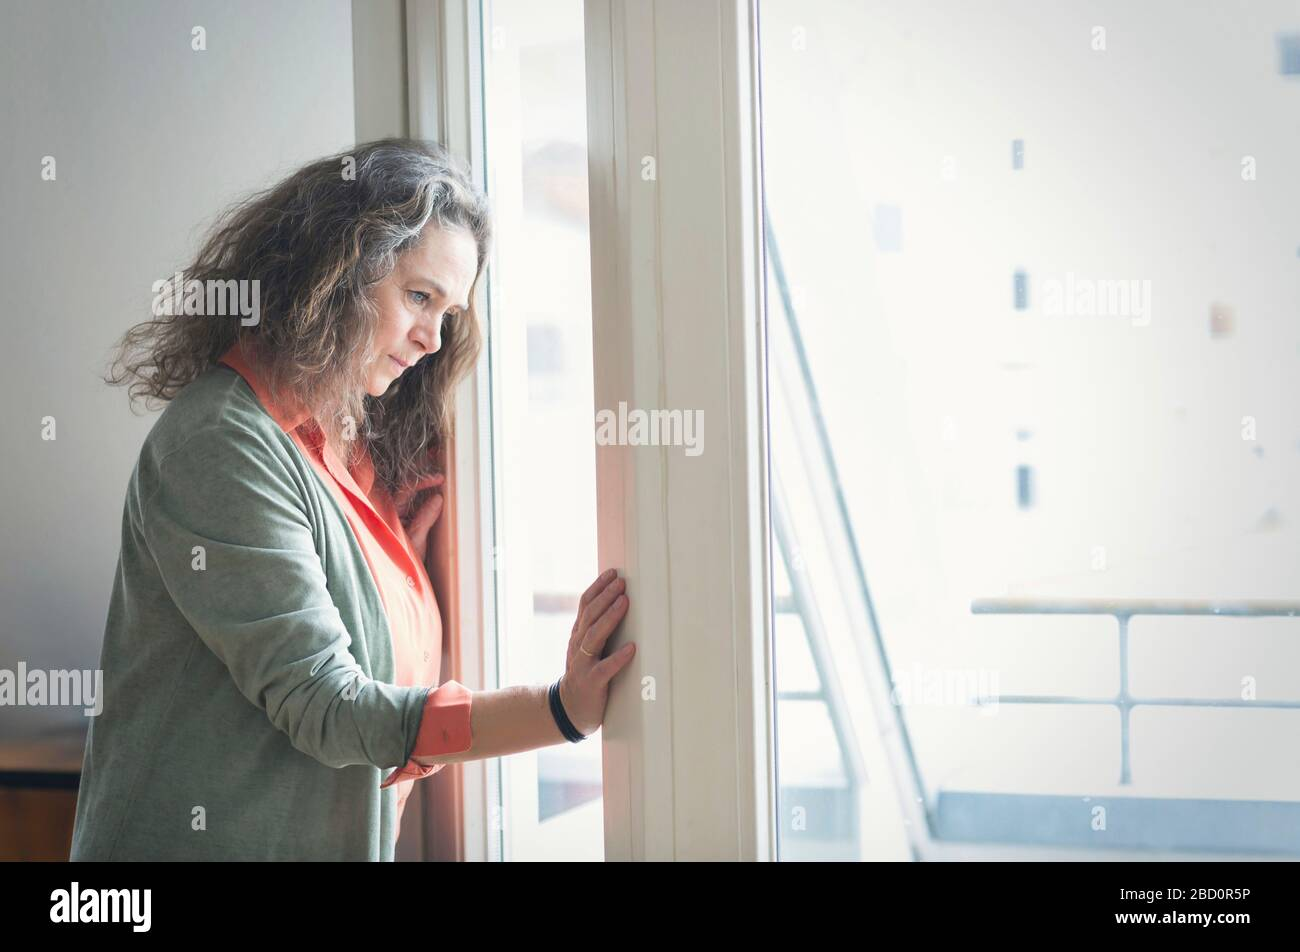 Attractive mature woman with long curly hair standing indoors looking out of a window with a thoughtful expression at something below Stock Photo